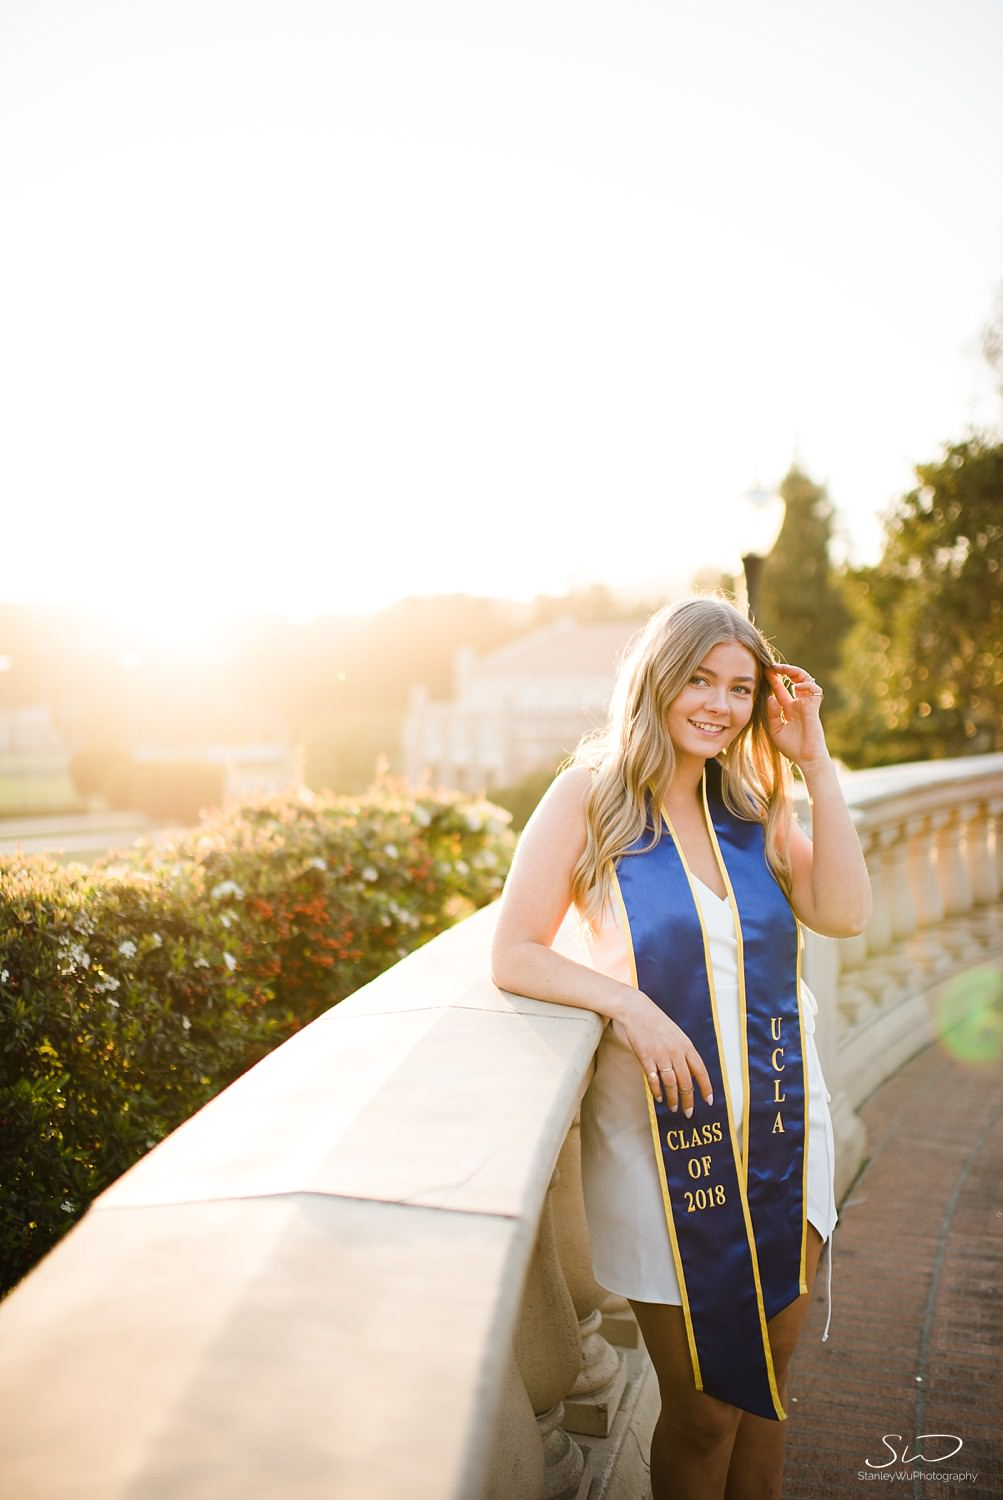 ucla-graduation-portraits_0011.jpg